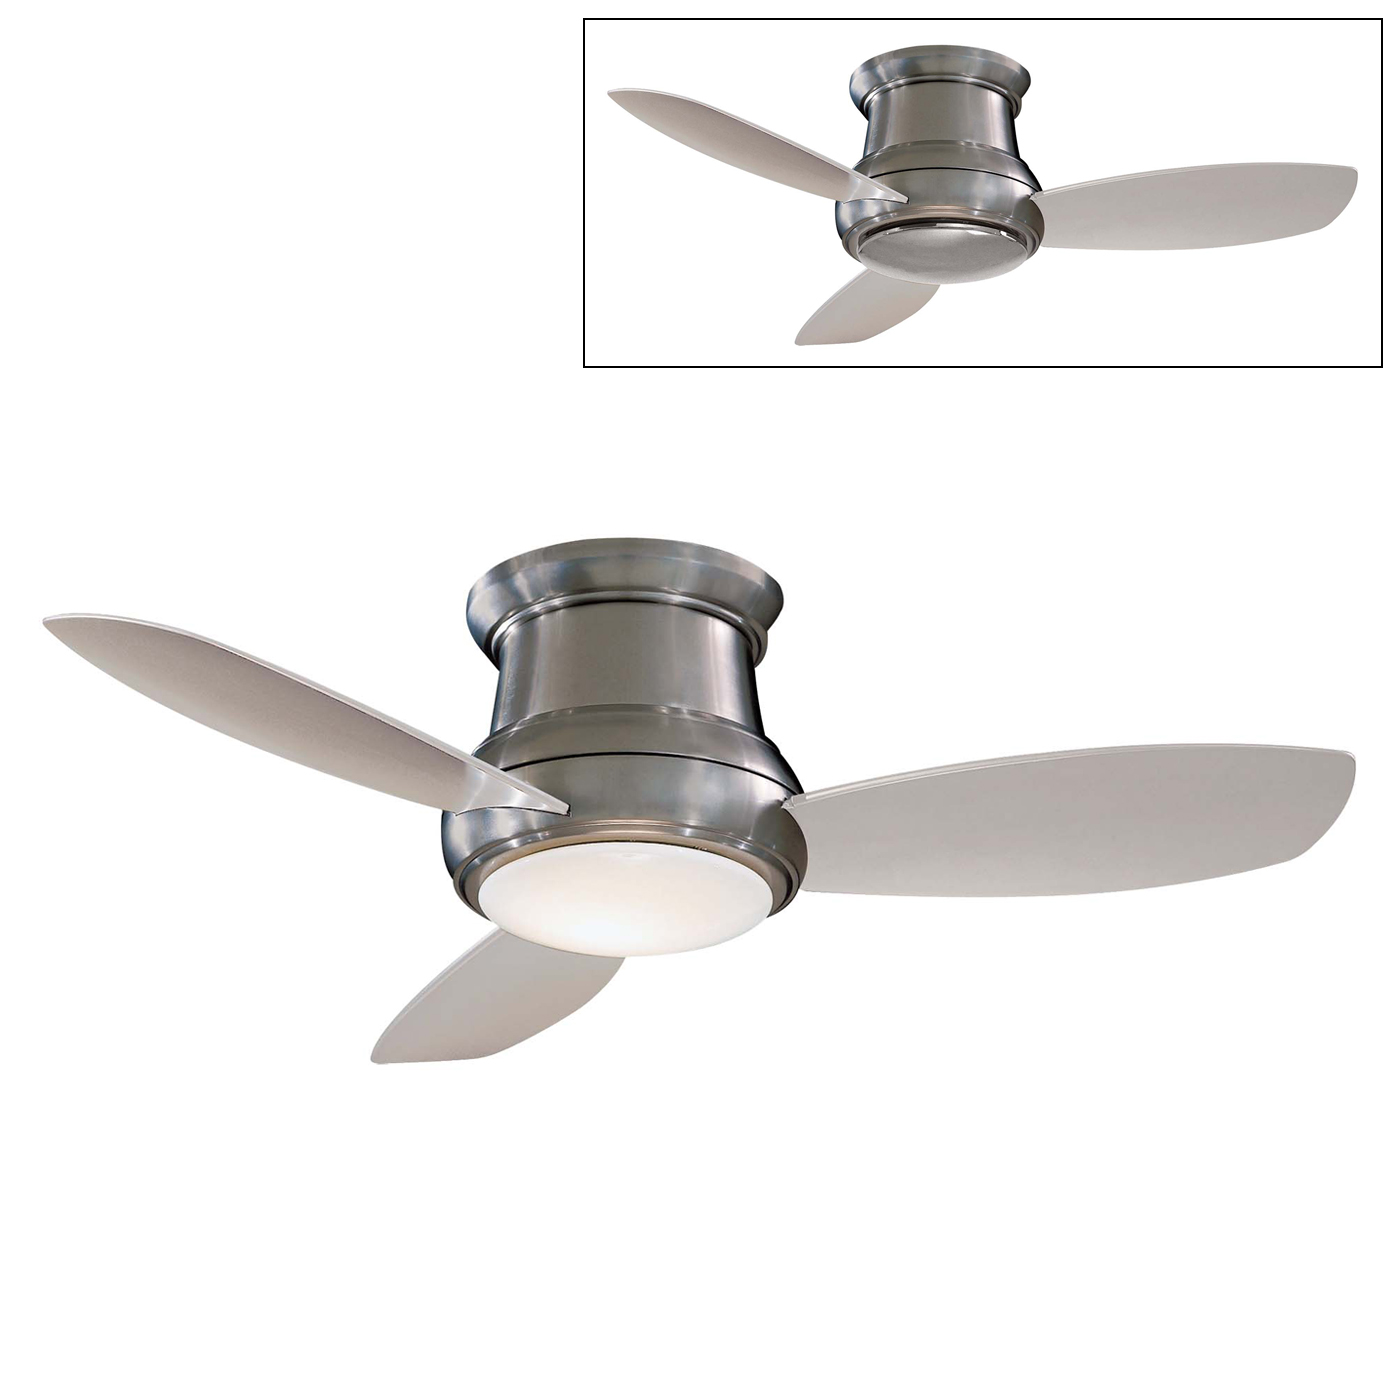 mounting a ceiling fan photo - 10